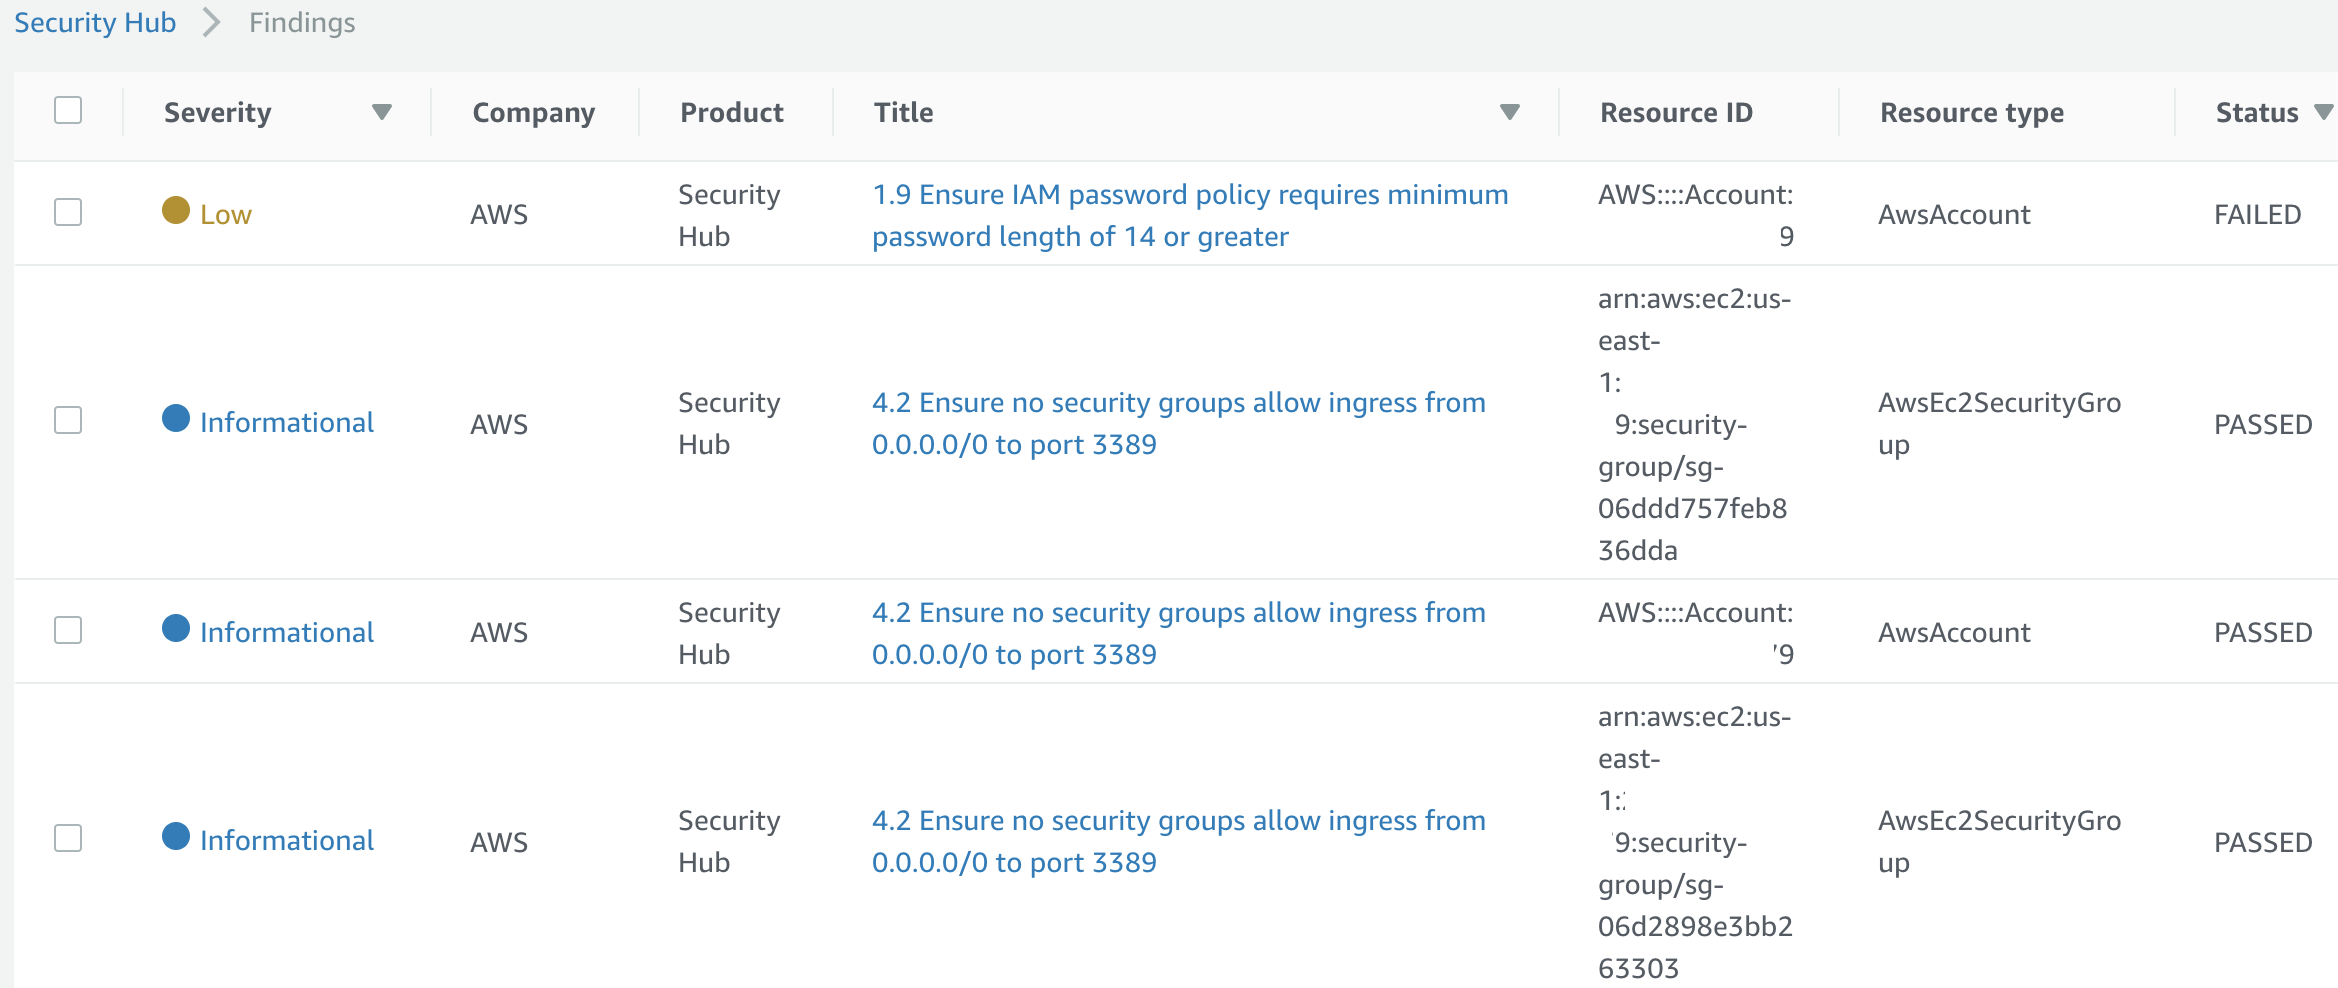 AWS Security Hub - The IT Hollow